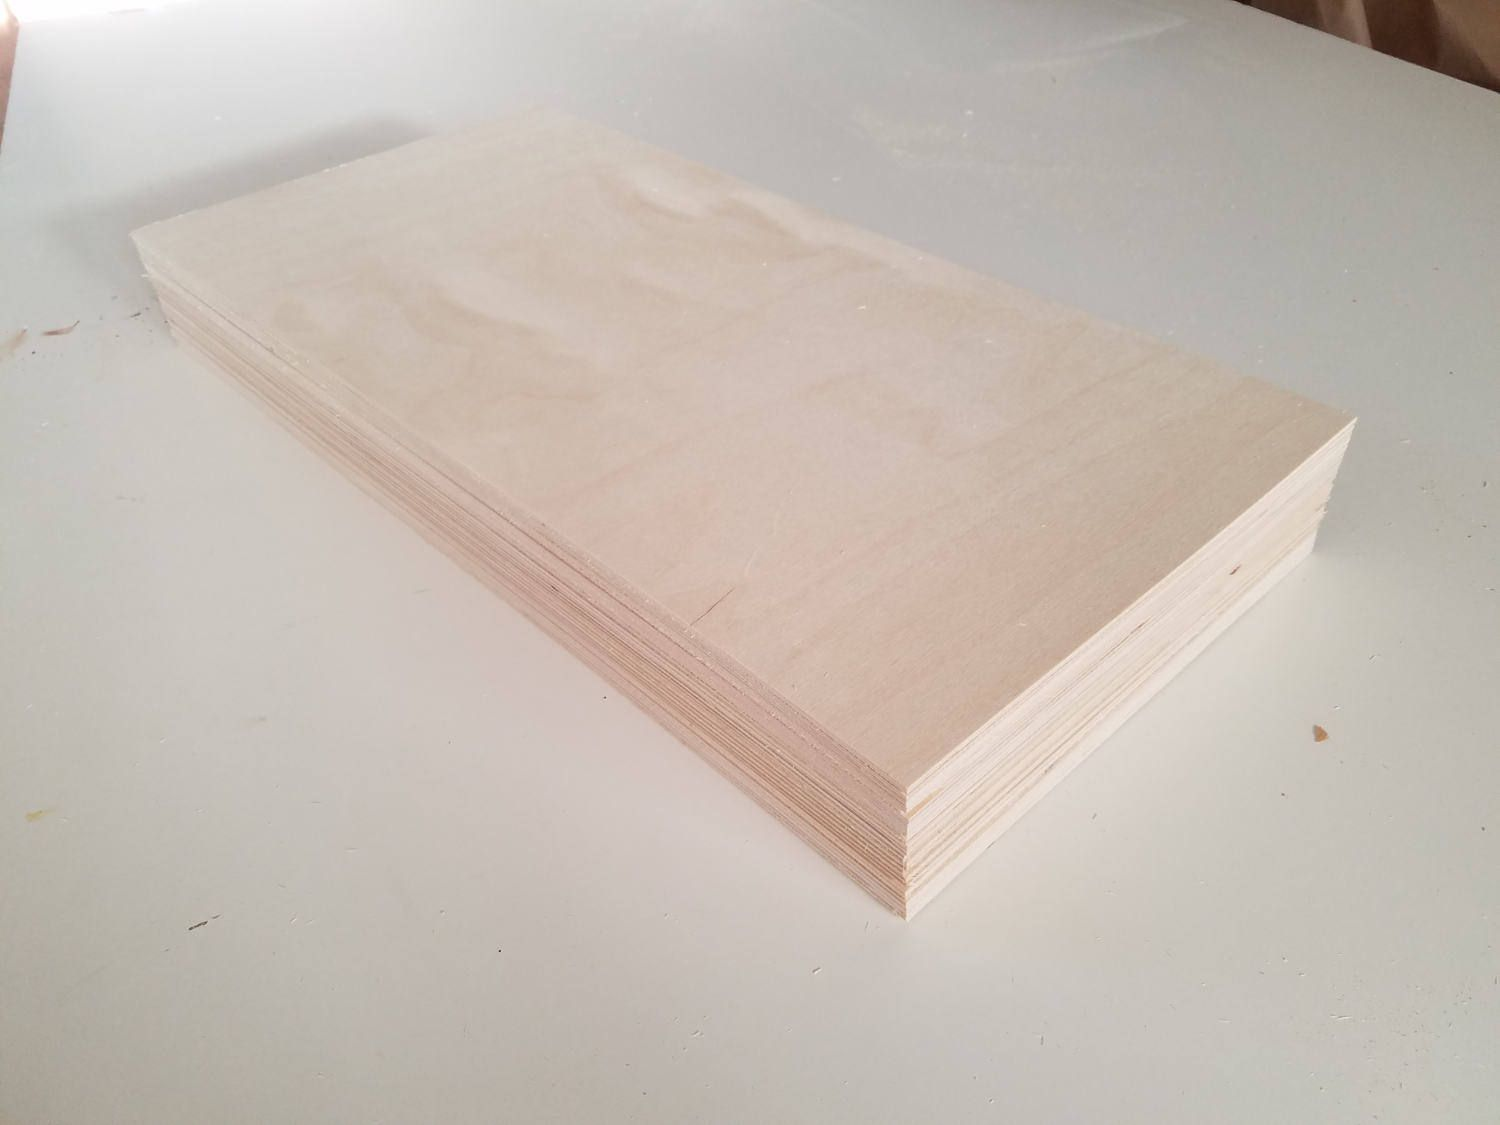 1 8 Birch 18x24 50 Sheets Baltic Birch Plywood 3mm By Americanlasersupply On Etsy Baltic Birch Plywood Laser Baltic Birch Plywood Birch Plywood Baltic Birch